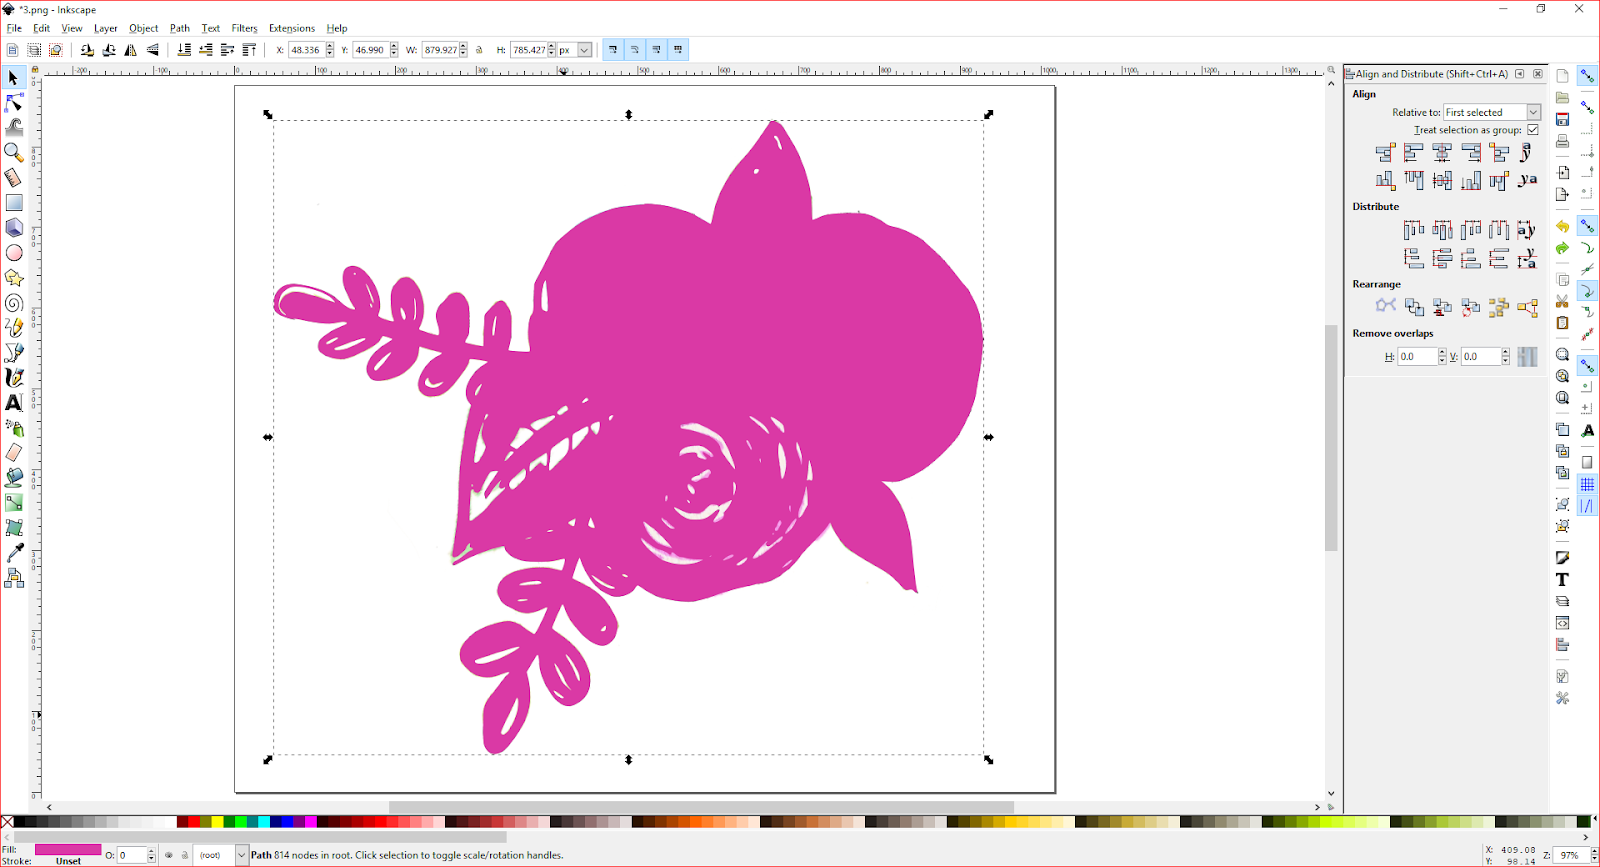 A screenshot of flowers ink inkscape.